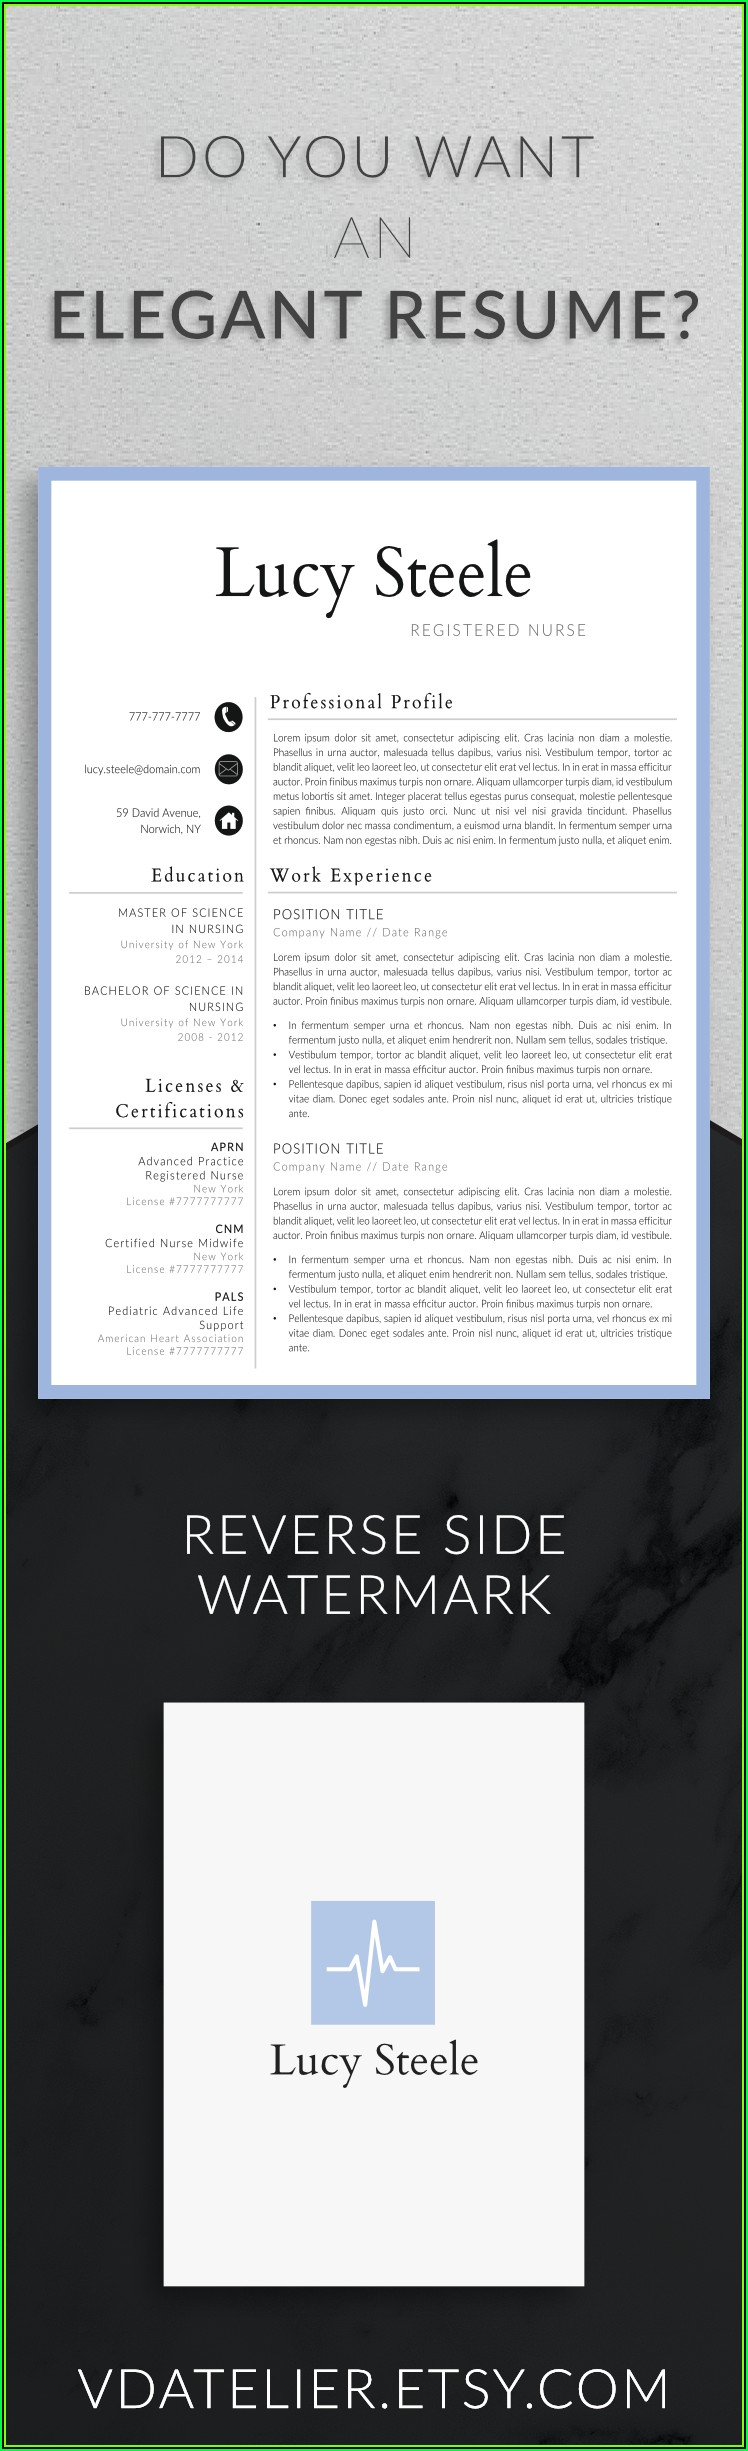 Professional Resume Template For Nurses